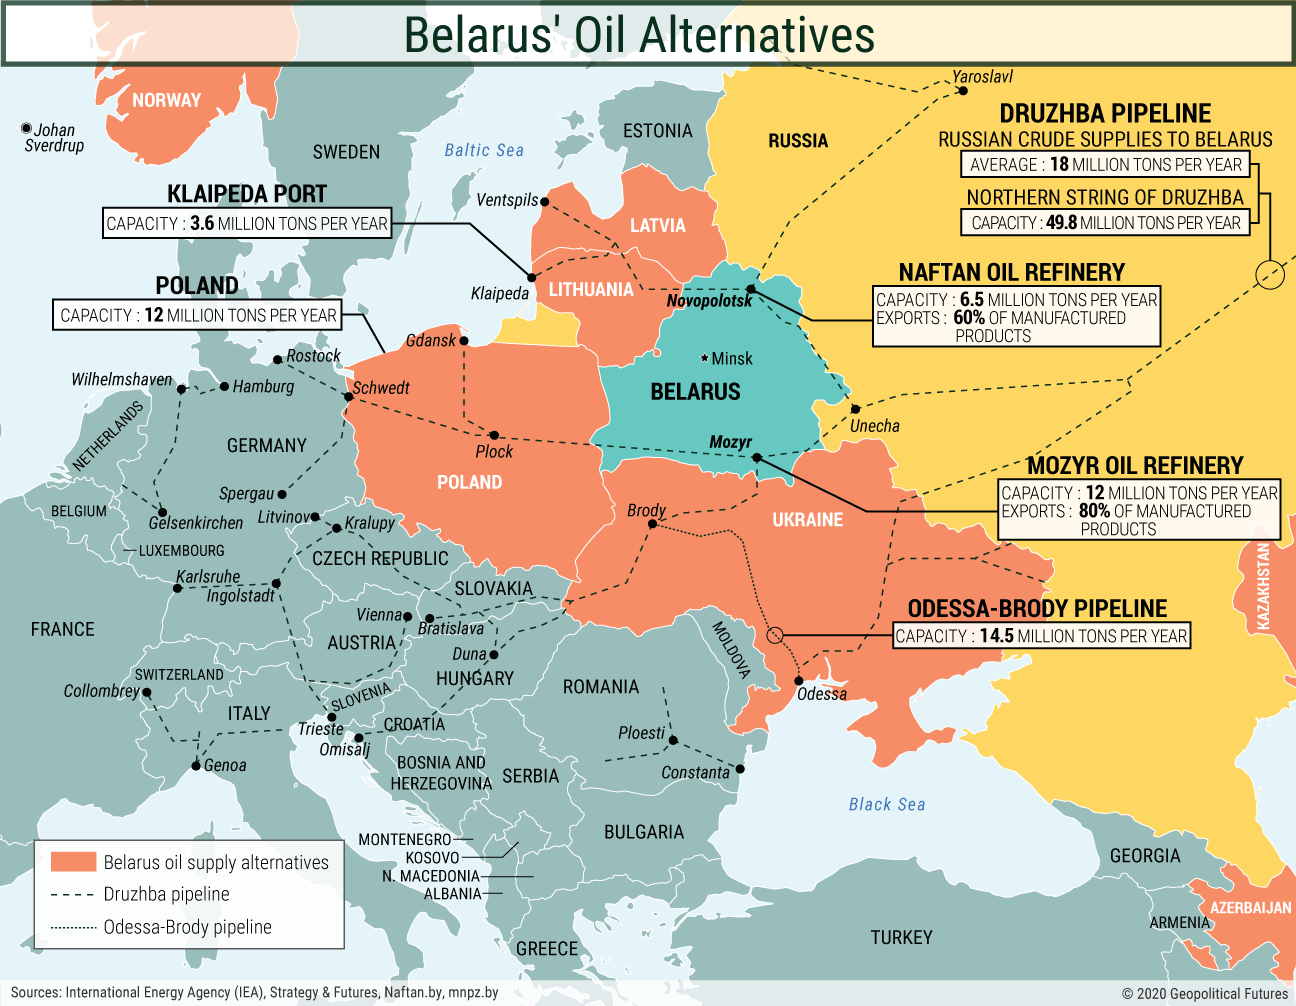 Belarus' Oil Alternatives